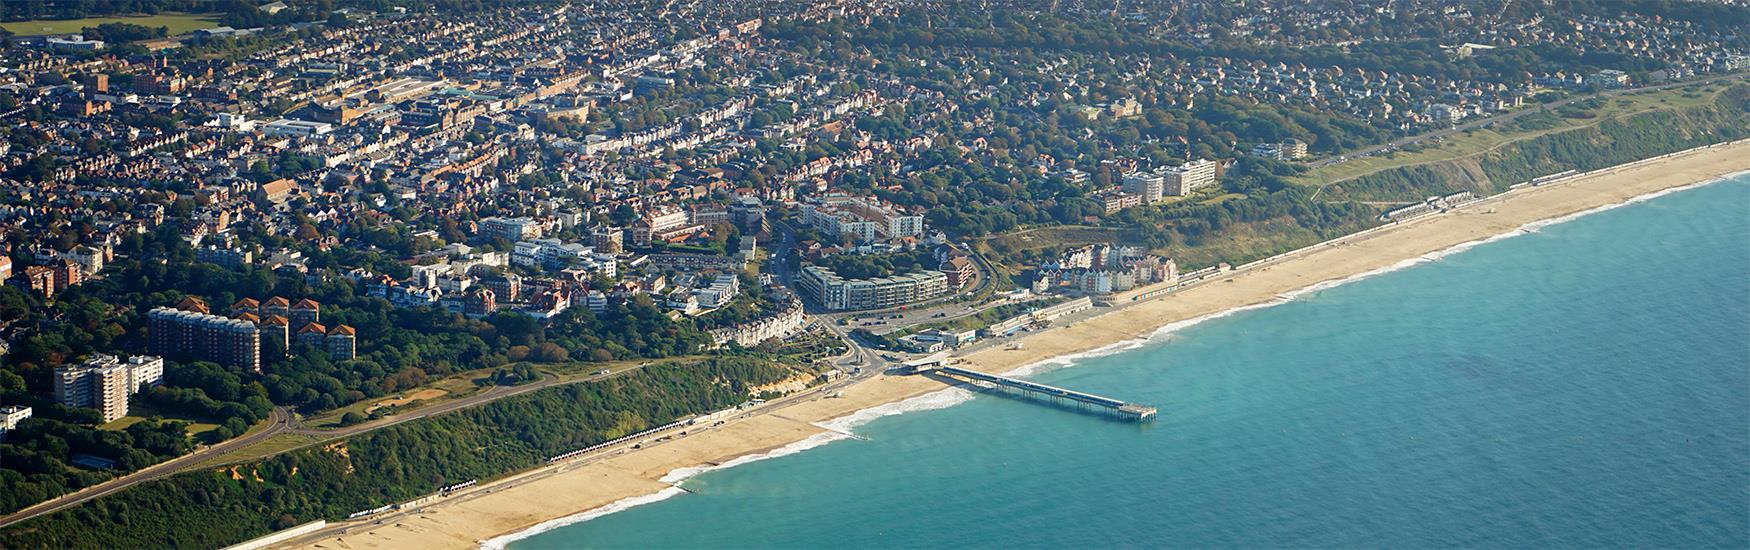 Order online in Bournemouth to receive home deliveries